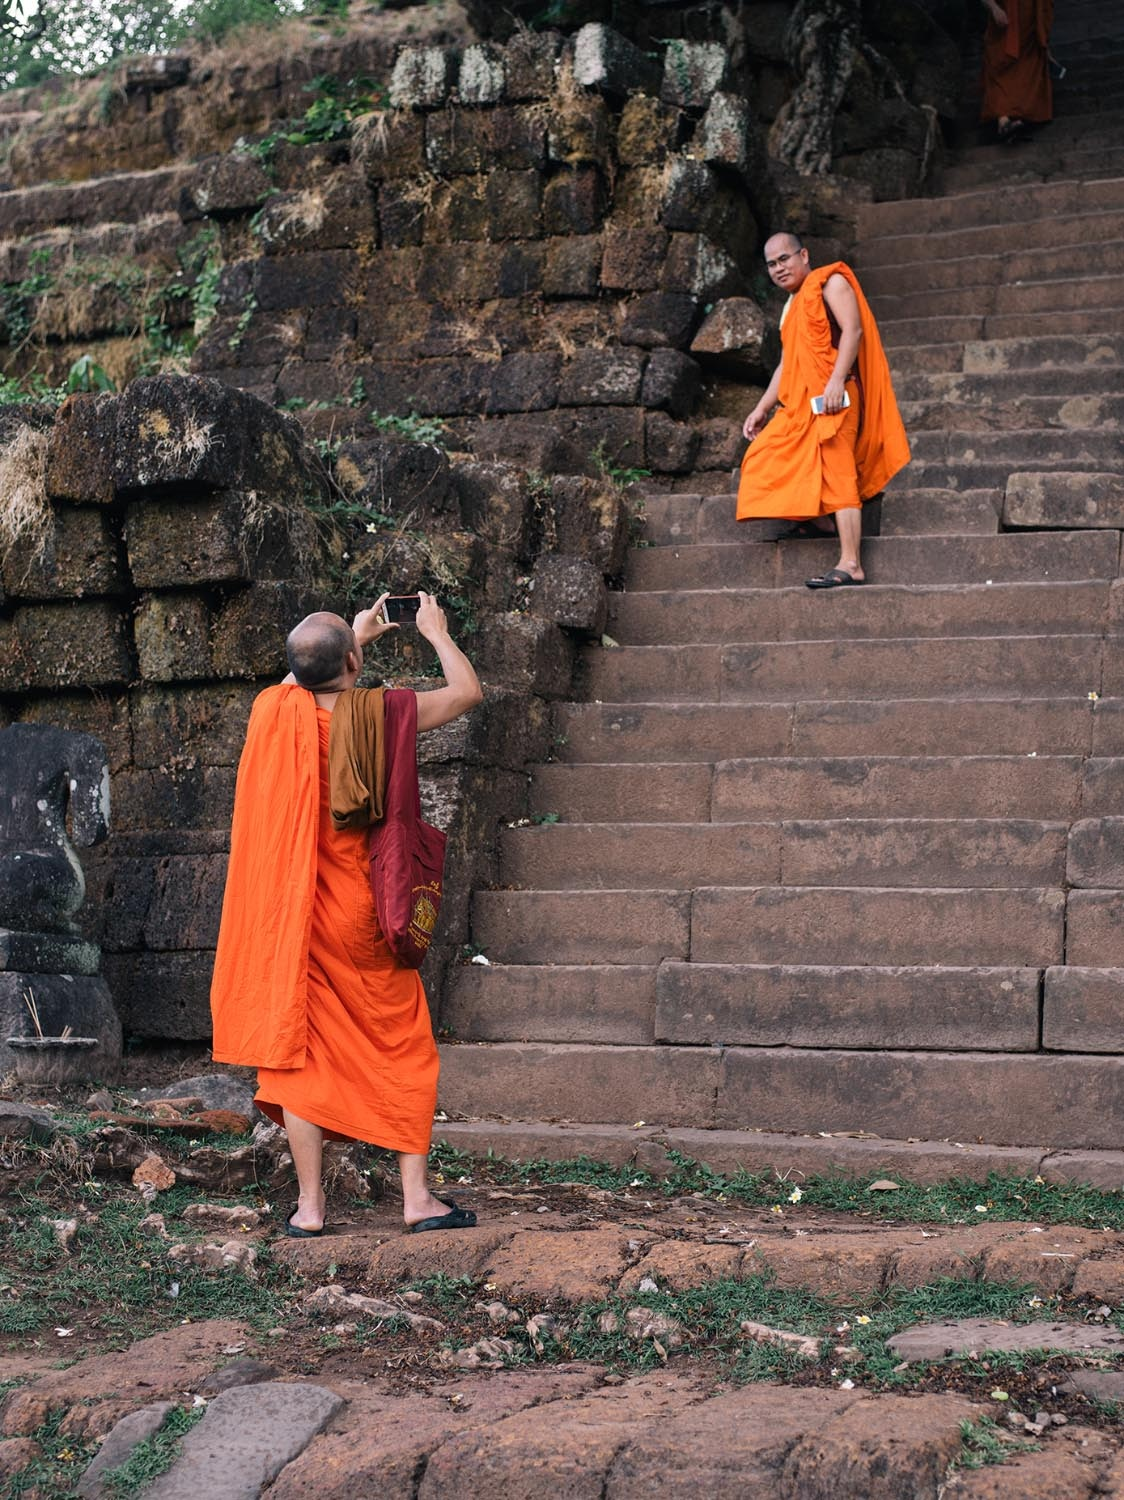 Monks enjoying a visit to Vat Phou, Laos © The World Ahead of Us